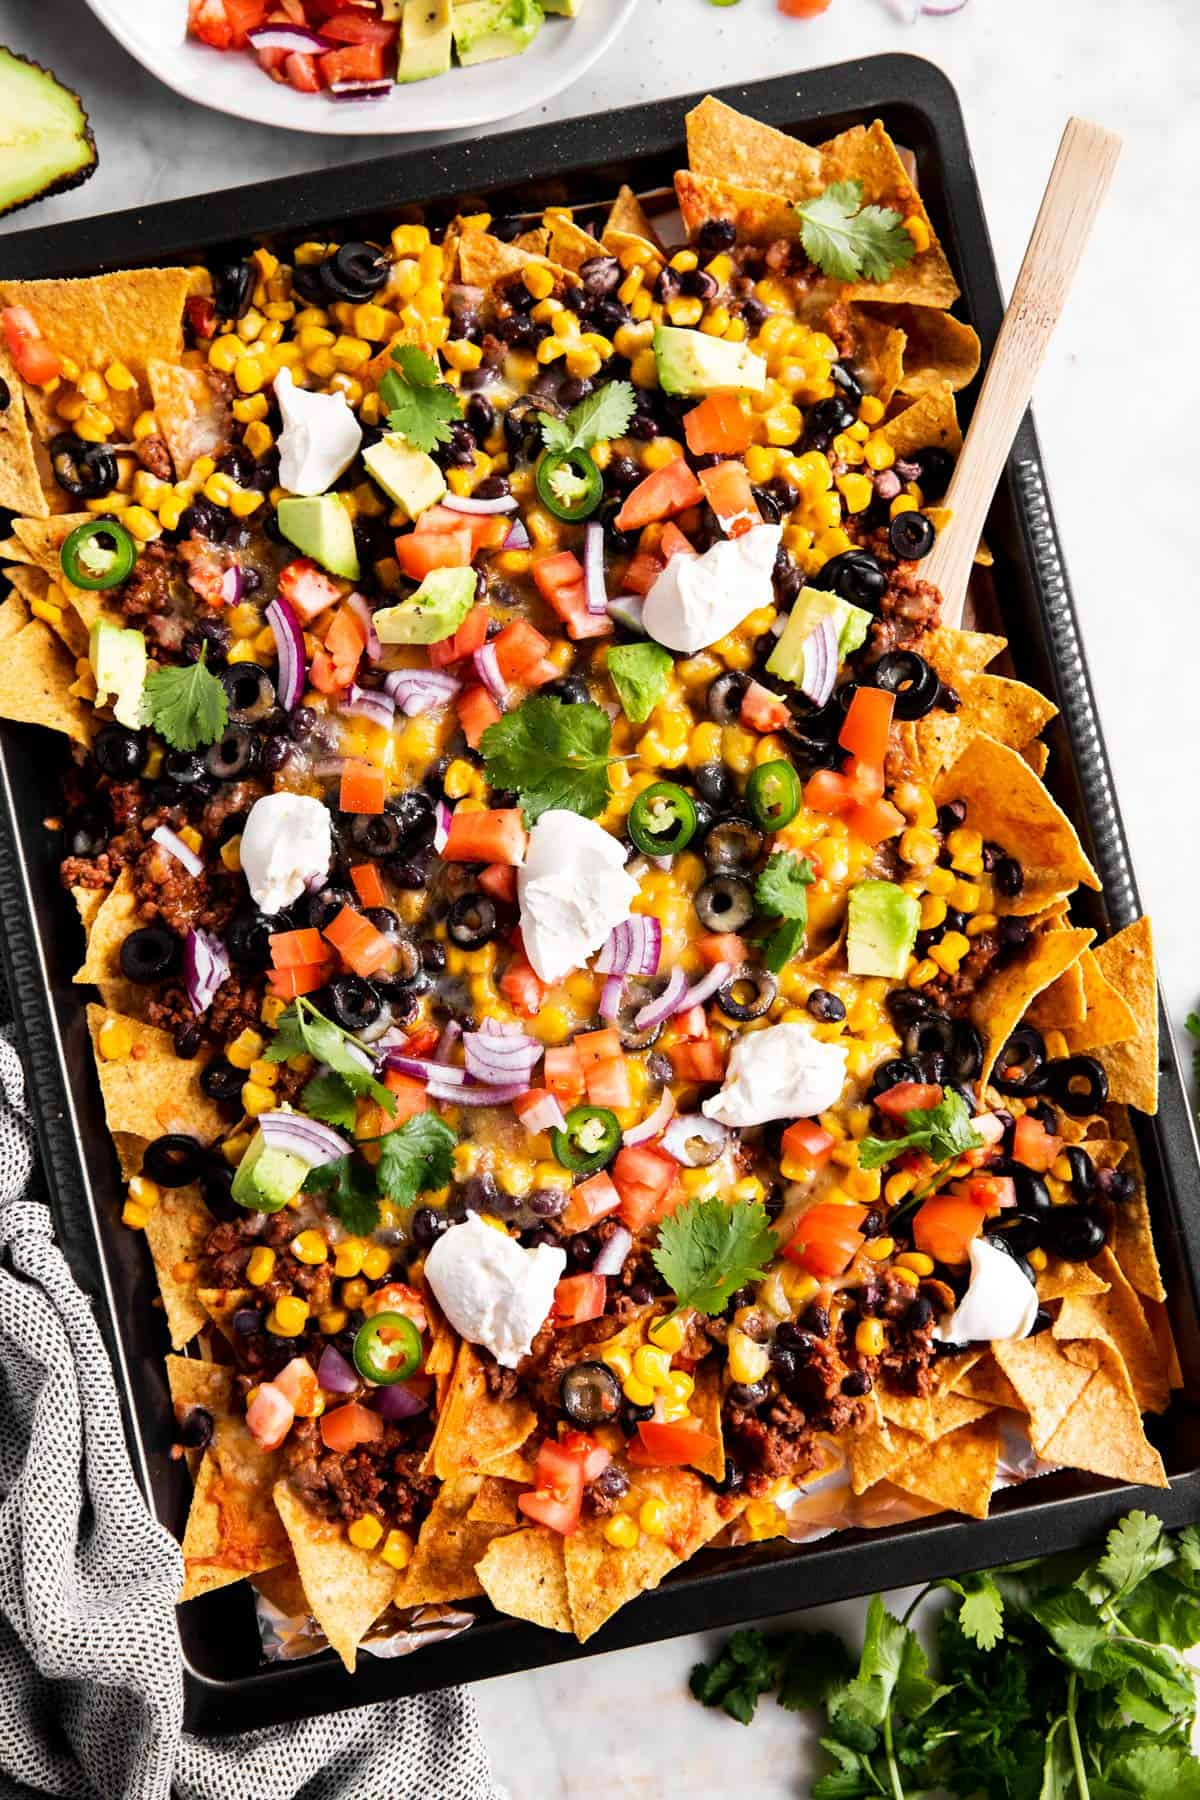 sheet pan with nachos and toppings from above